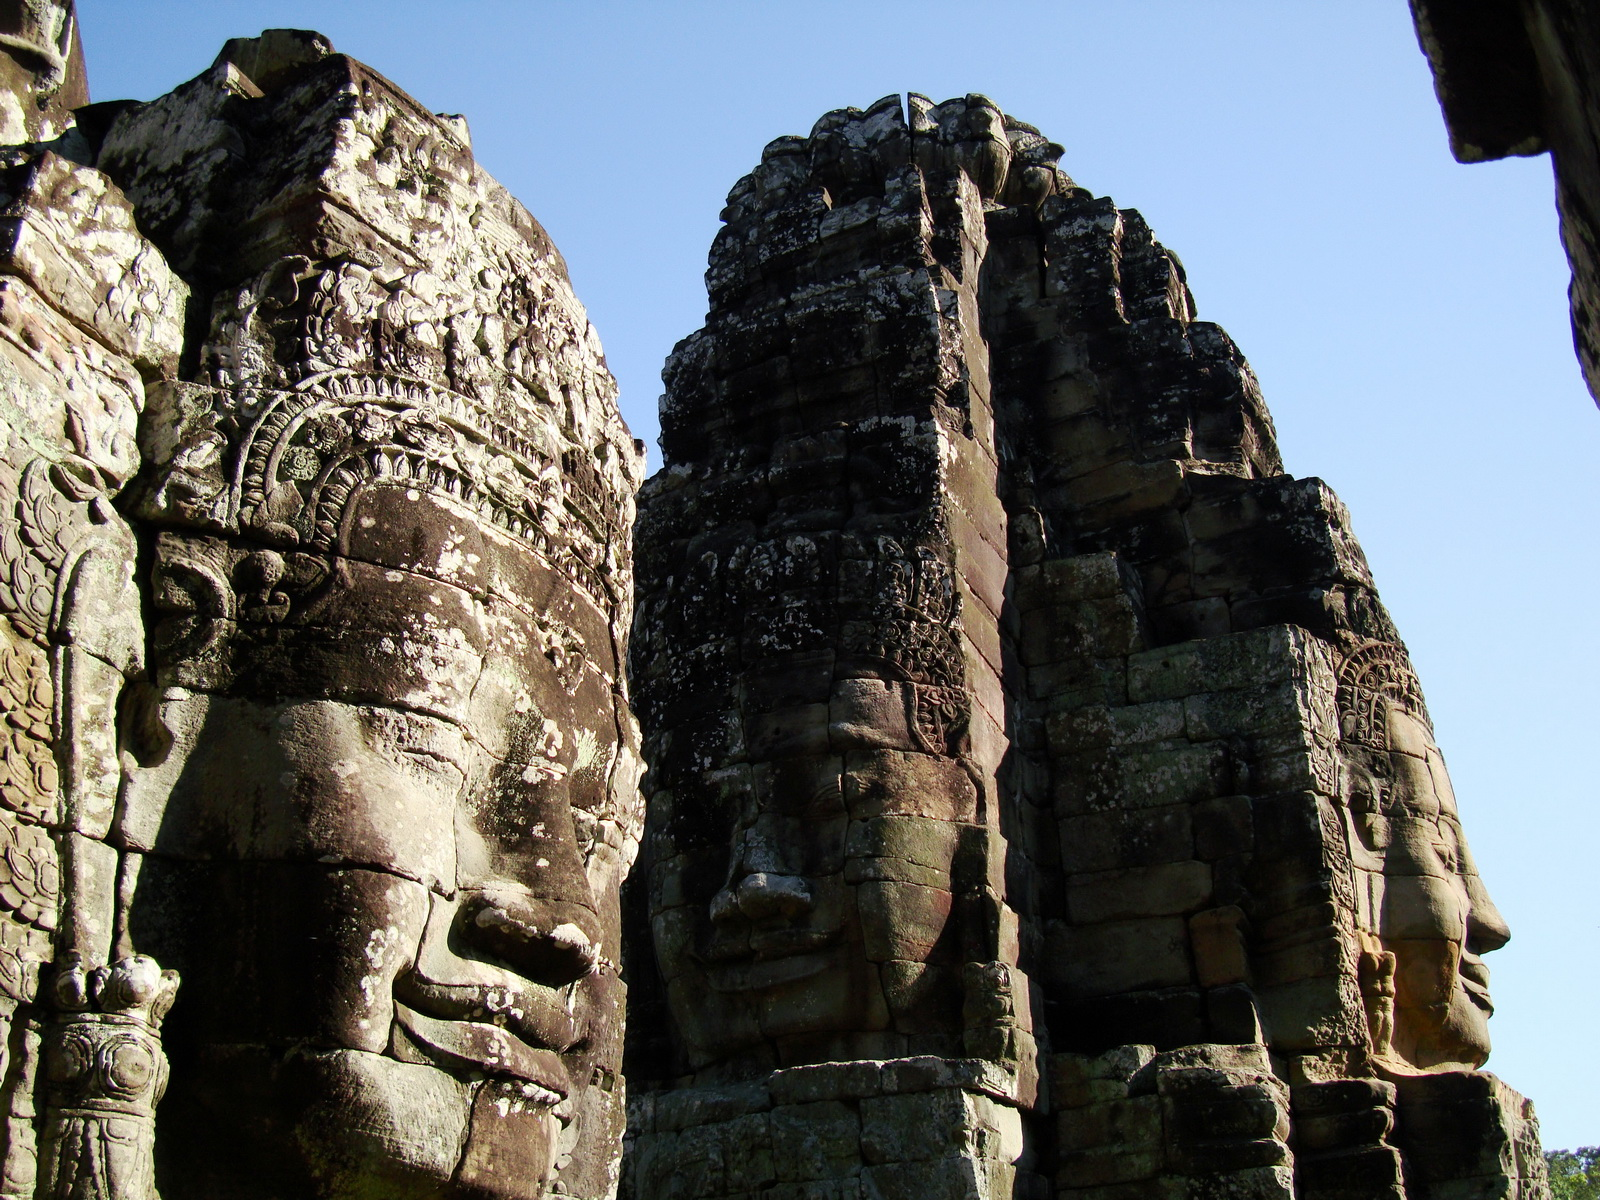 Bayon Temple NW inner gallery face towers Angkor Siem Reap 30